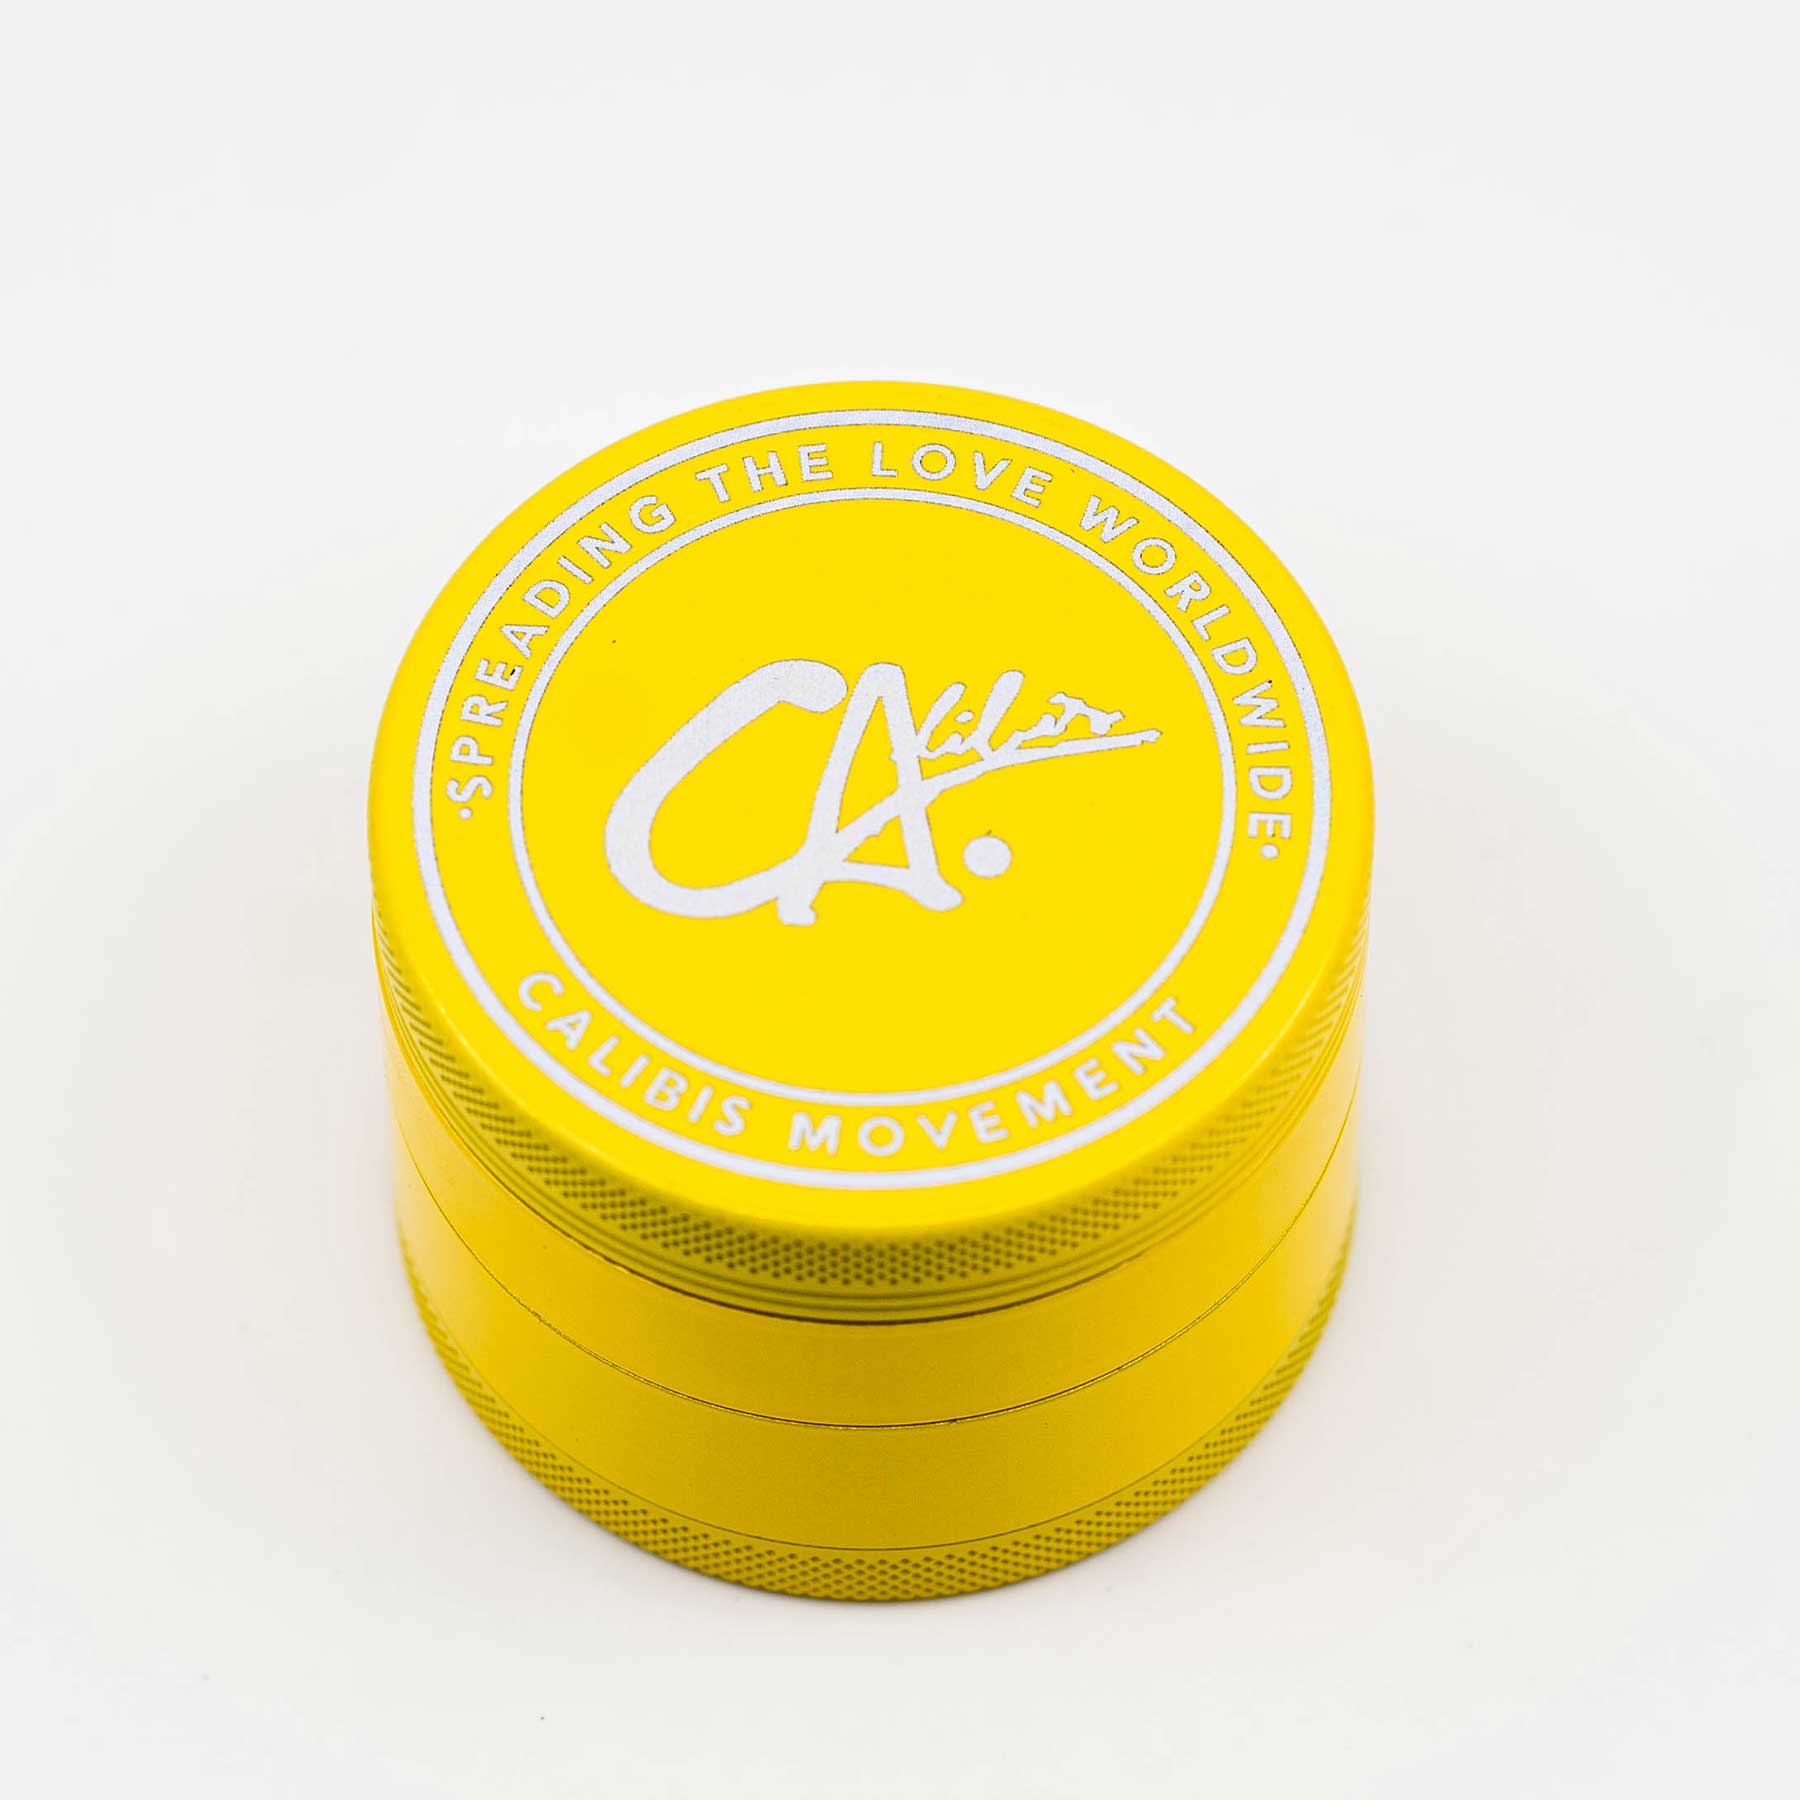 Worldwide Ceramic Grinder by Calibis Clothing